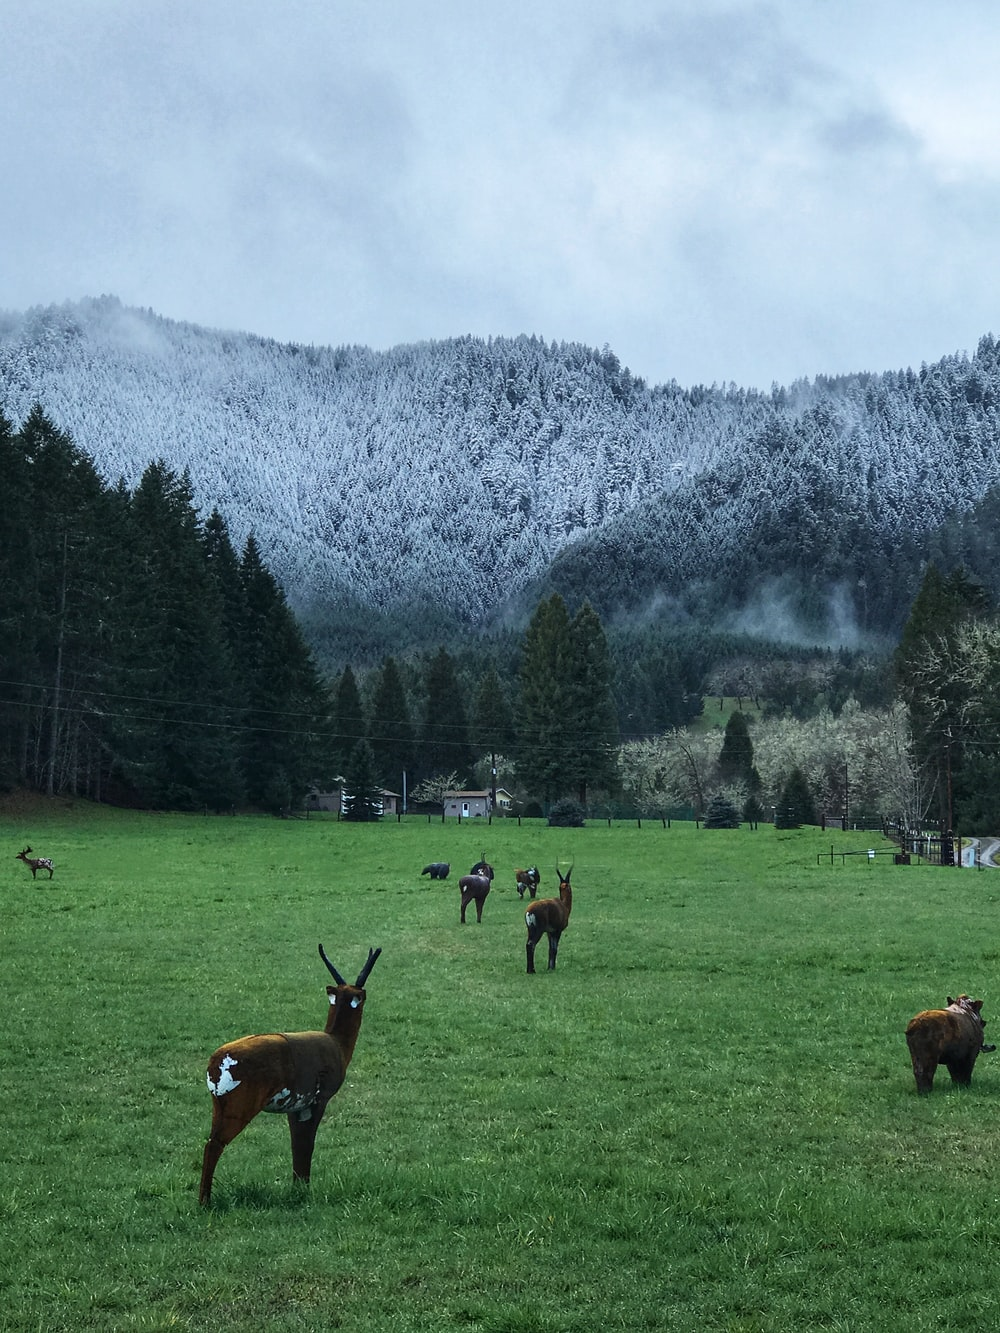 brown deer on grass field in front of tall trees